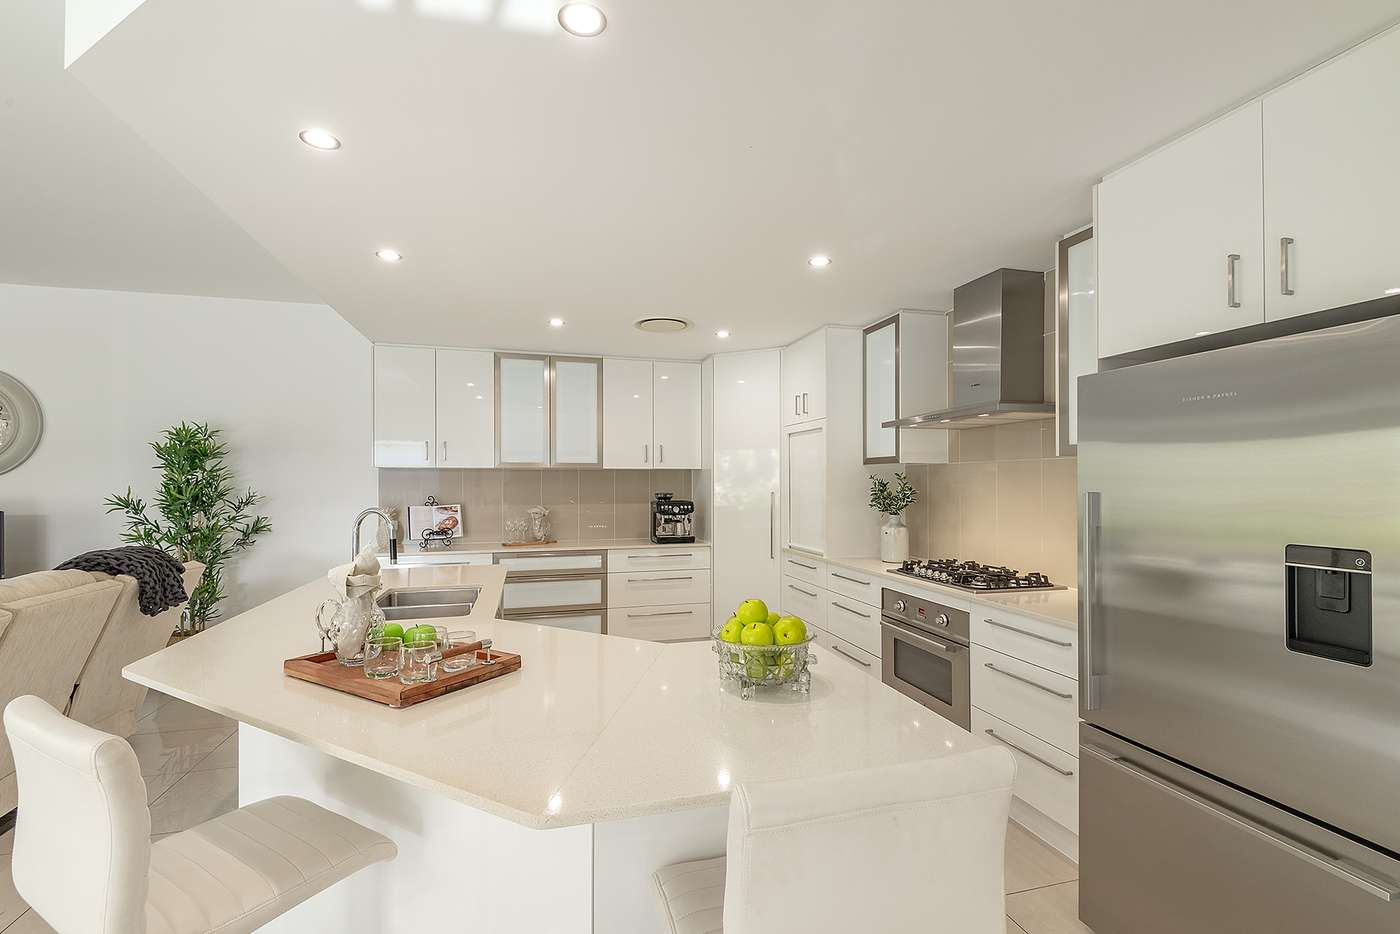 Sixth view of Homely house listing, 27 Hetherington Dr, Twin Waters QLD 4564